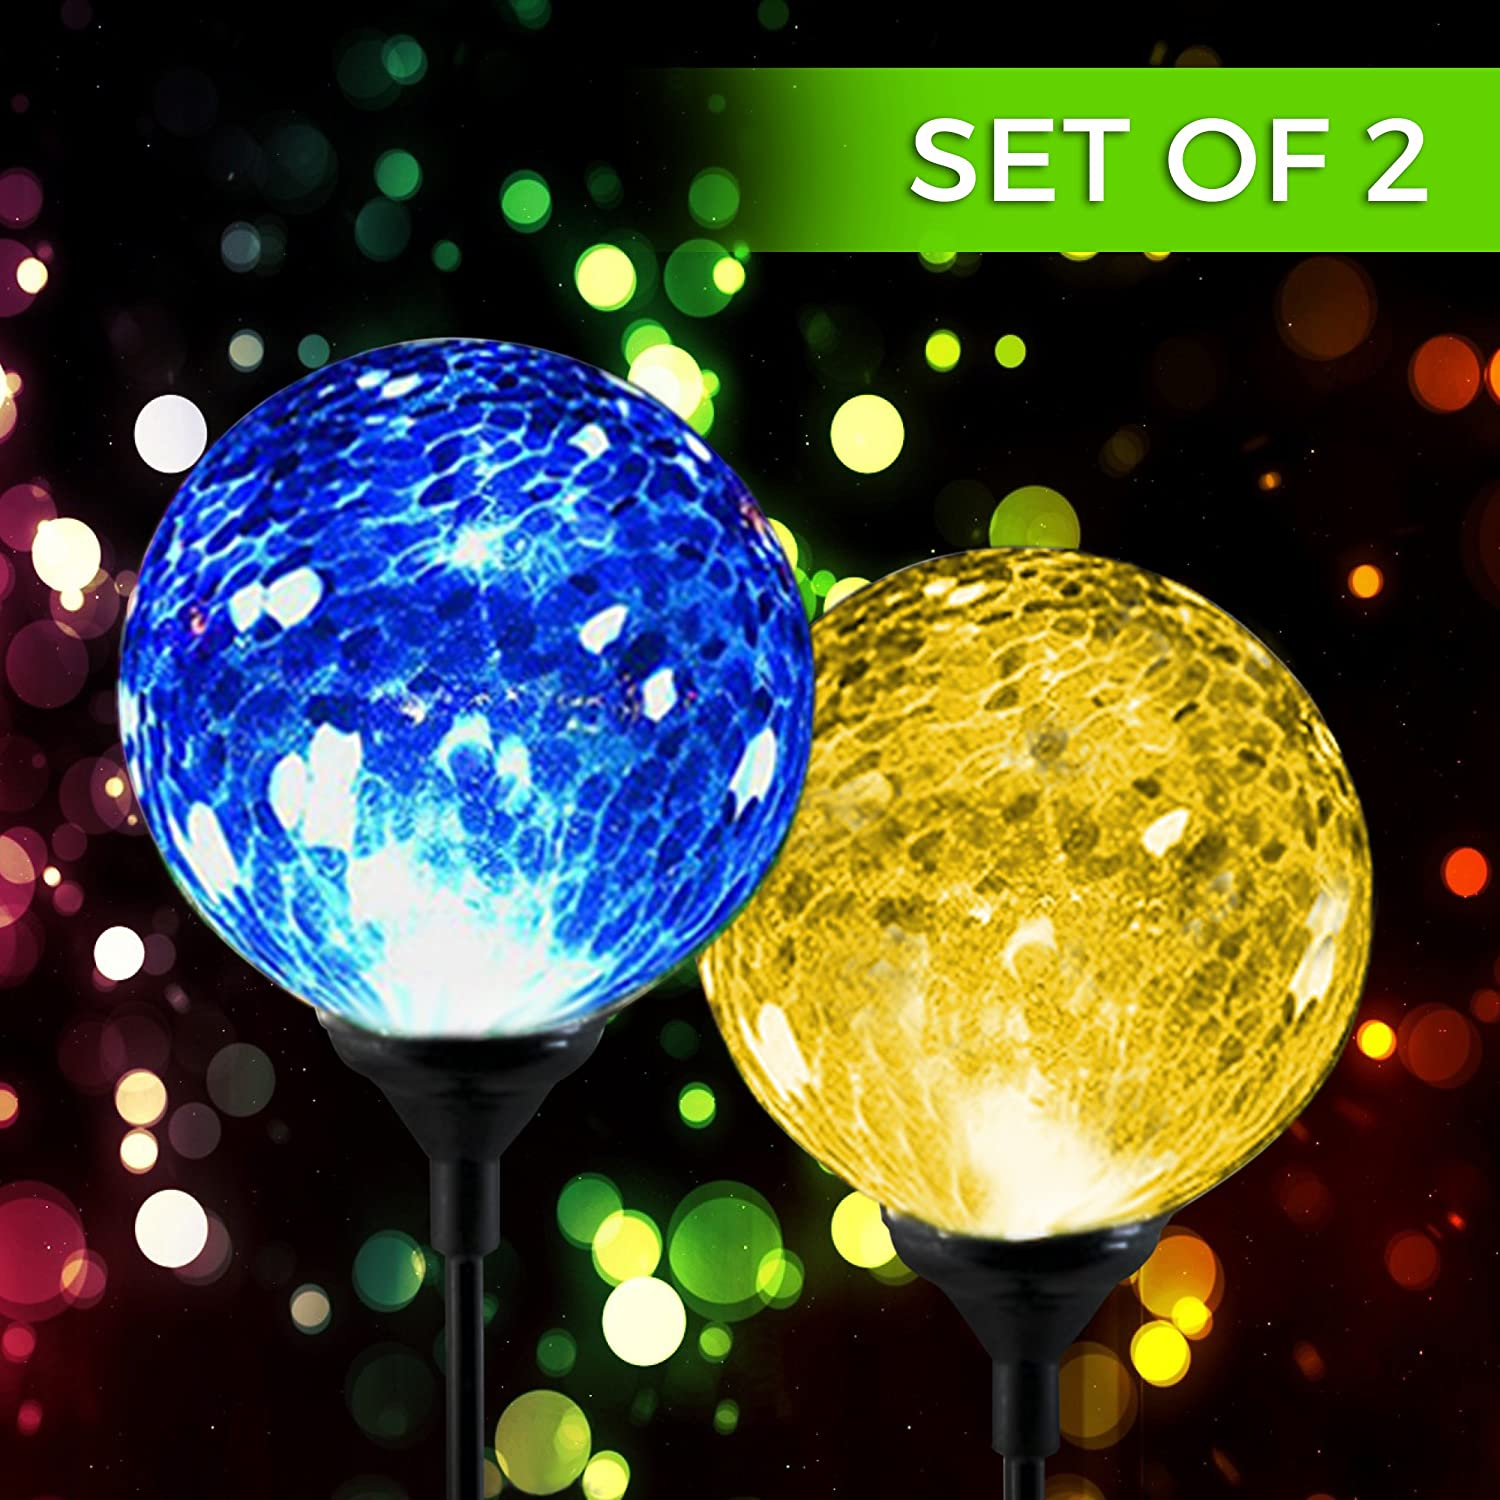 Amazon.com: Solar Powered Crackle Glass Ball  Color Changing Stake Lights   Set Of 2  100% Weatherproof Design  Decorative Landscape Lamps  Wireless  Outdoor ...